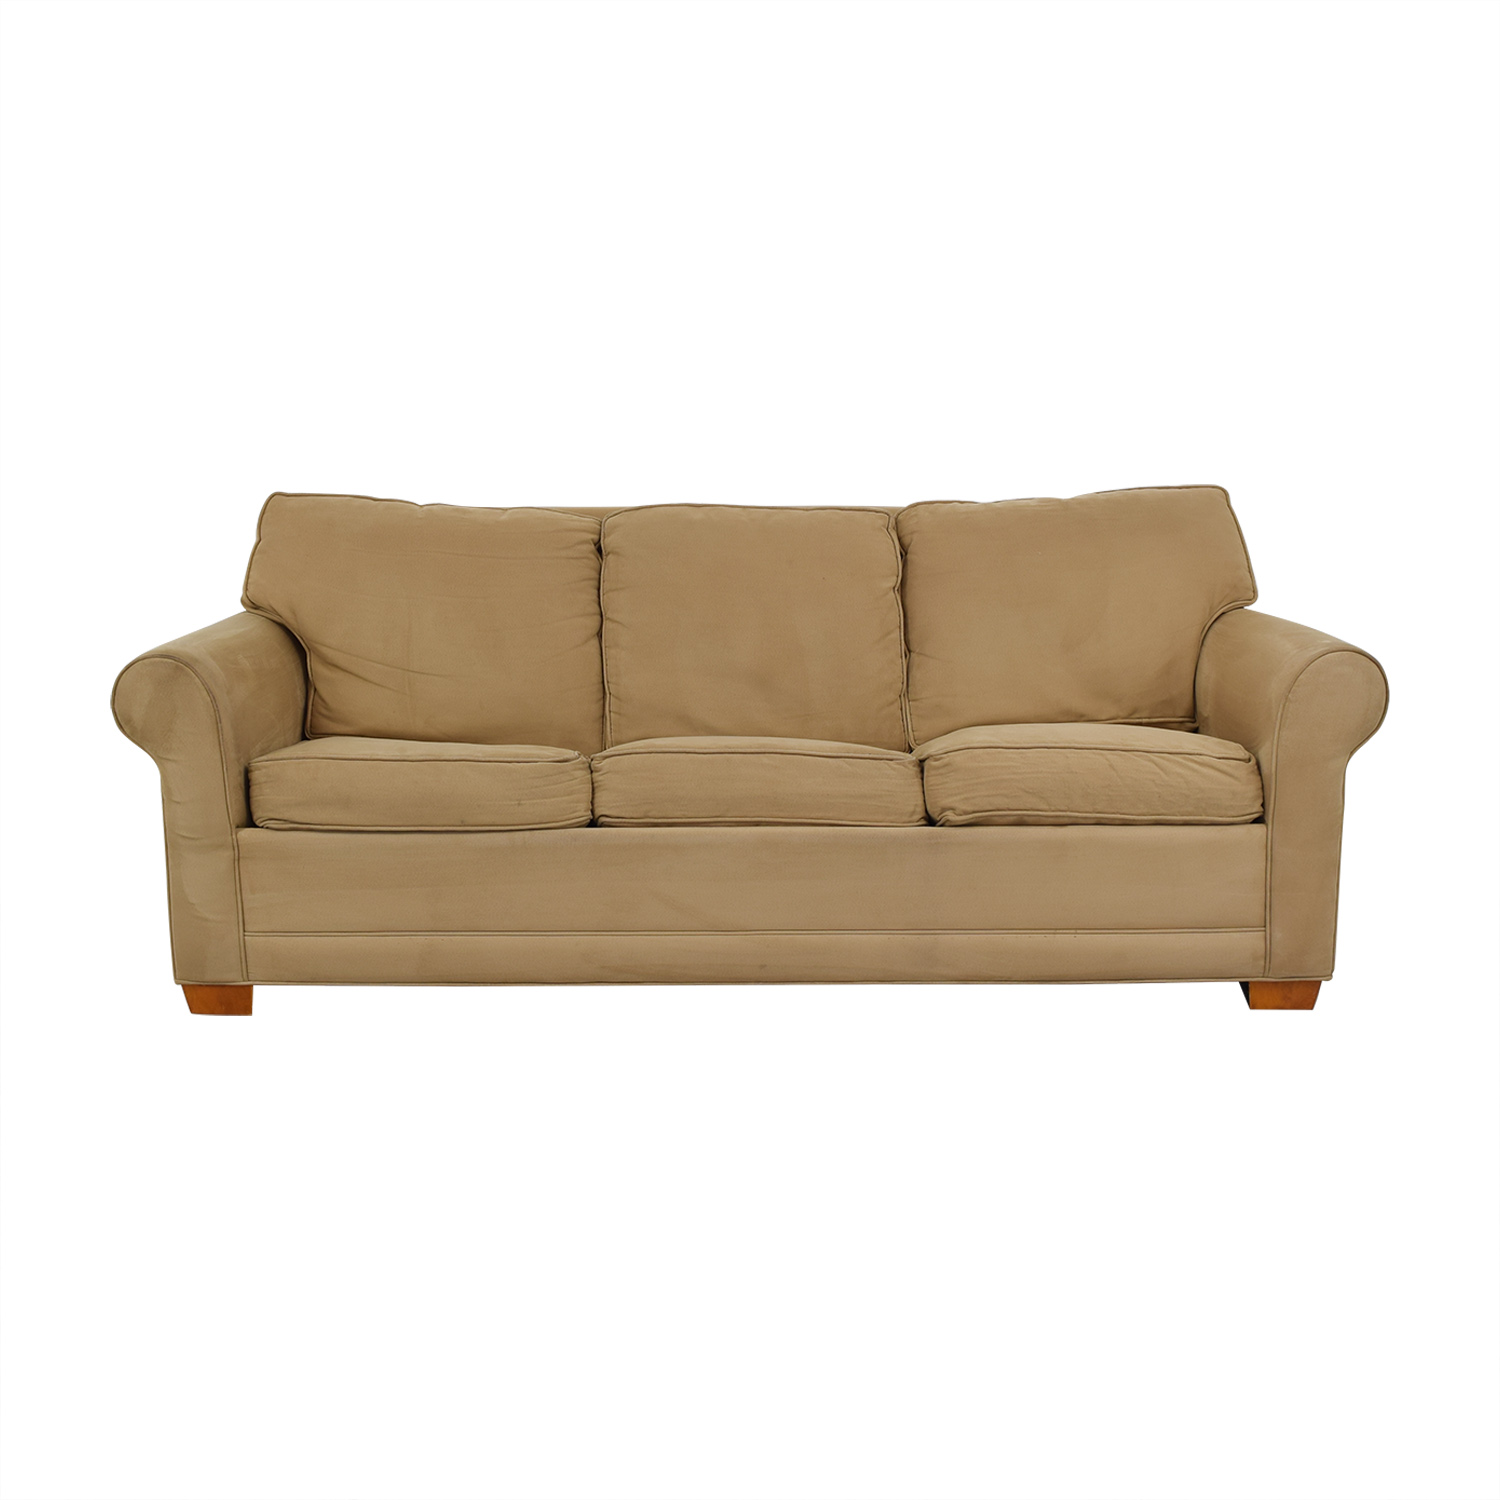 Raymour & Flanigan Raymour & Flanigan Sleeper Sofa ma